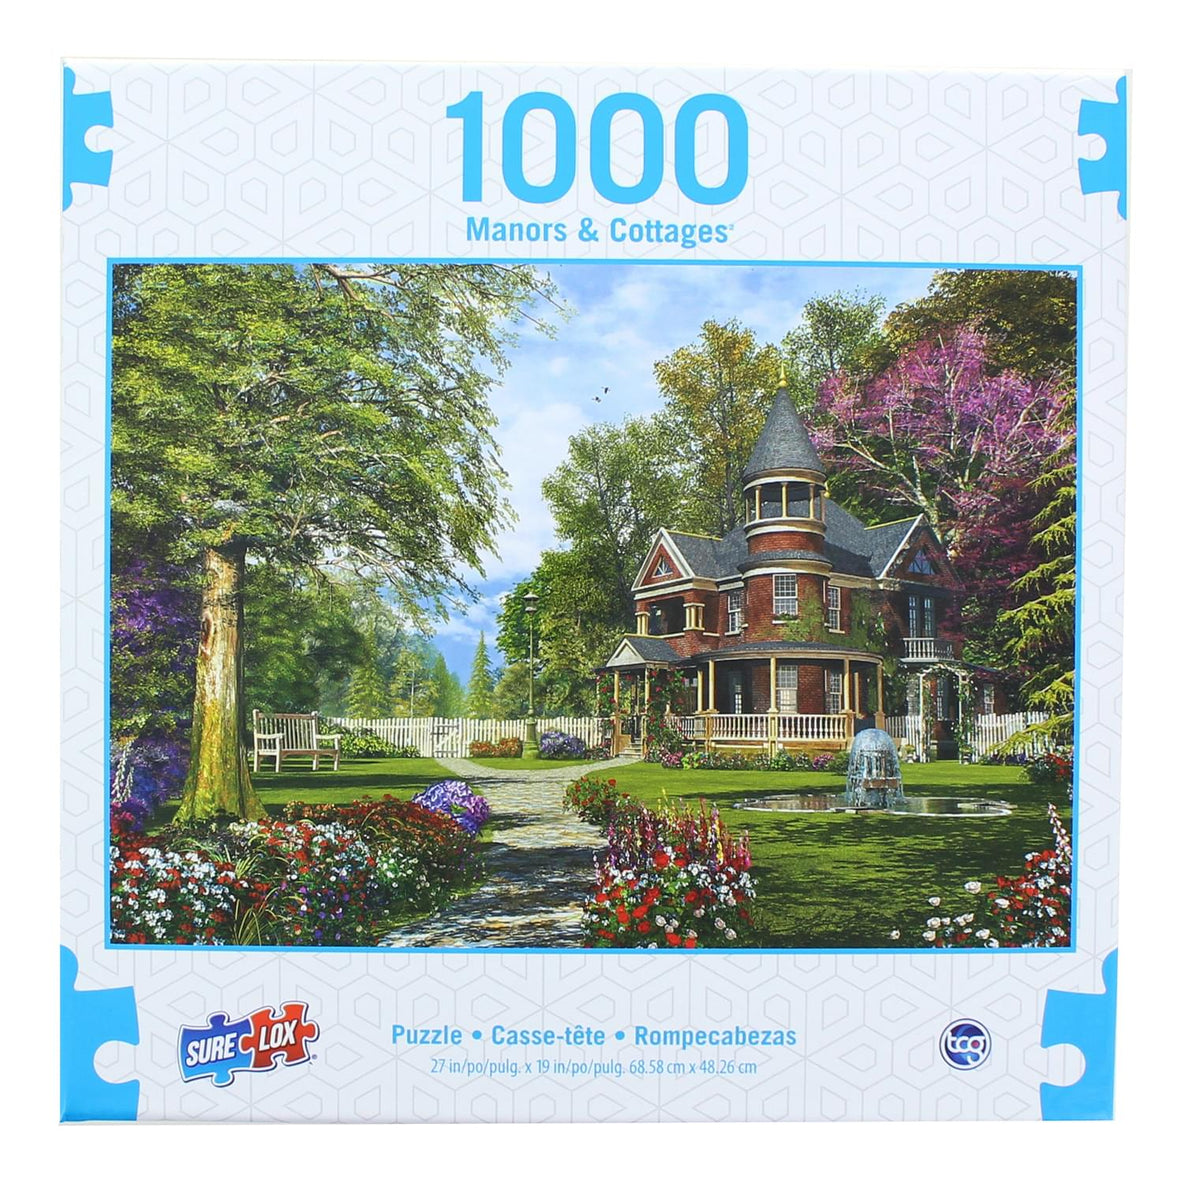 Manors & Cottages 1000 Piece Jigsaw Puzzle | Late Summer Garden